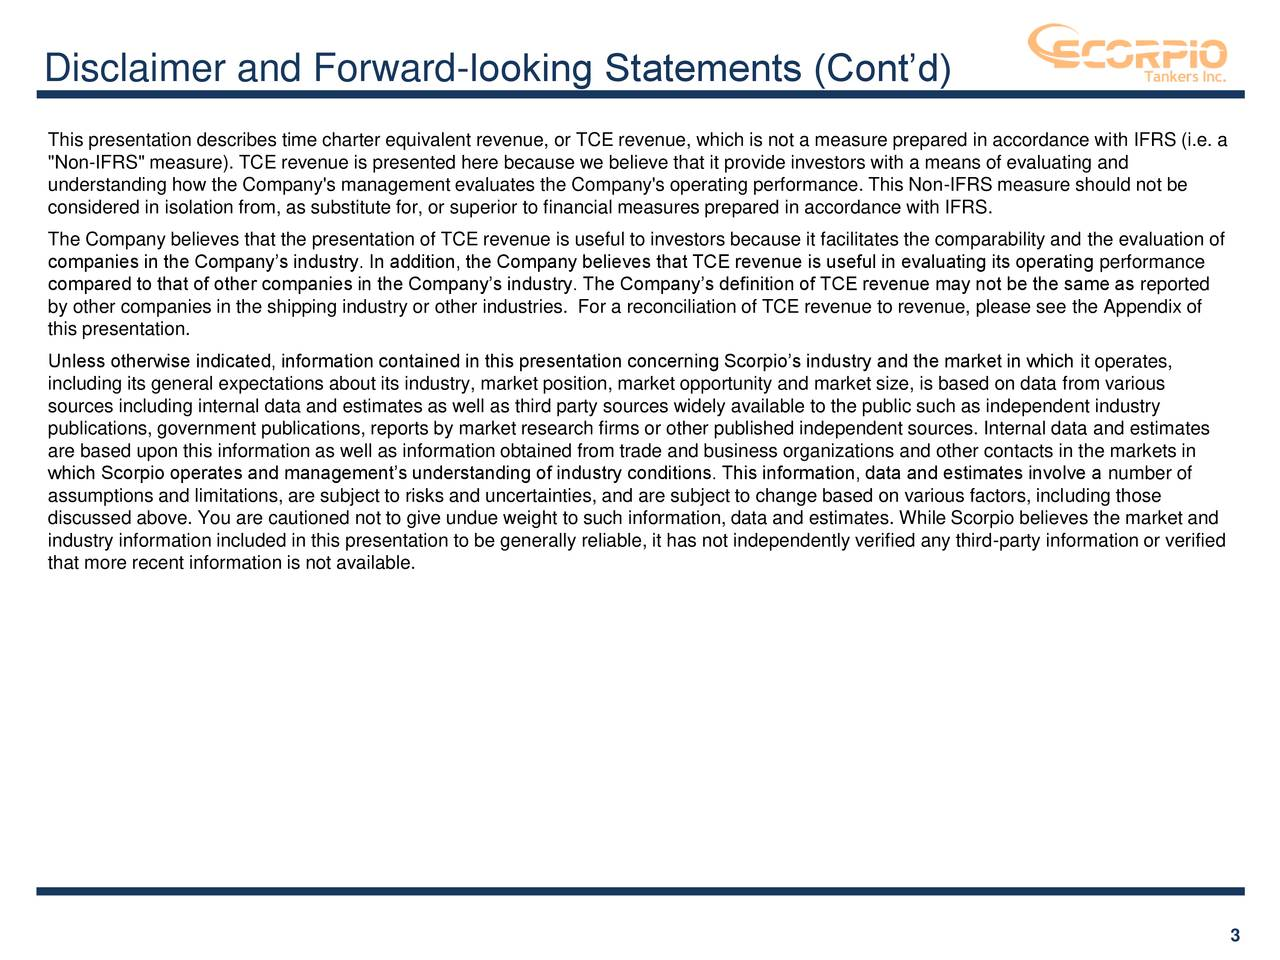 """This presentation describes time charter equivalent revenue, or TCE revenue, which is not a measure prepared in accordance with IFRS (i.e. a """"Non-IFRS"""" measure). TCE revenue is presented here because we believe that it provide investors with a means of evaluating and understanding how the Company's management evaluates the Company's operating performance. This Non-IFRS measure should not be considered in isolation from, as substitute for, or superior to financial measures prepared in accordance with IFRS. The Company believes that the presentation of TCE revenue is useful to investors because it facilitates the comparability and the evaluation of companies in the Company's industry. In addition, the Company believes that TCE revenue is useful in evaluating its operating performance compared to that of other companies in the Company's industry. The Company's definition of TCE revenue may not be the same as reported by other companies in the shipping industry or other industries. For a reconciliation of TCE revenue to revenue, please see the Appendix of this presentation. Unless otherwise indicated, information contained in this presentation concerning Scorpio's industry and the market in which it operates, including its general expectations about its industry, market position, market opportunity and market size, is based on data from various sources including internal data and estimates as well as third party sources widely available to the public such as independent industry publications, government publications, reports by market research firms or other published independent sources. Internal data and estimates are based upon this information as well as information obtained from trade and business organizations and other contacts in the markets in which Scorpio operates and management's understanding of industry conditions. This information, data and estimates involve a number of assumptions and limitations, are subject to risks and uncertainties, and are subject t"""